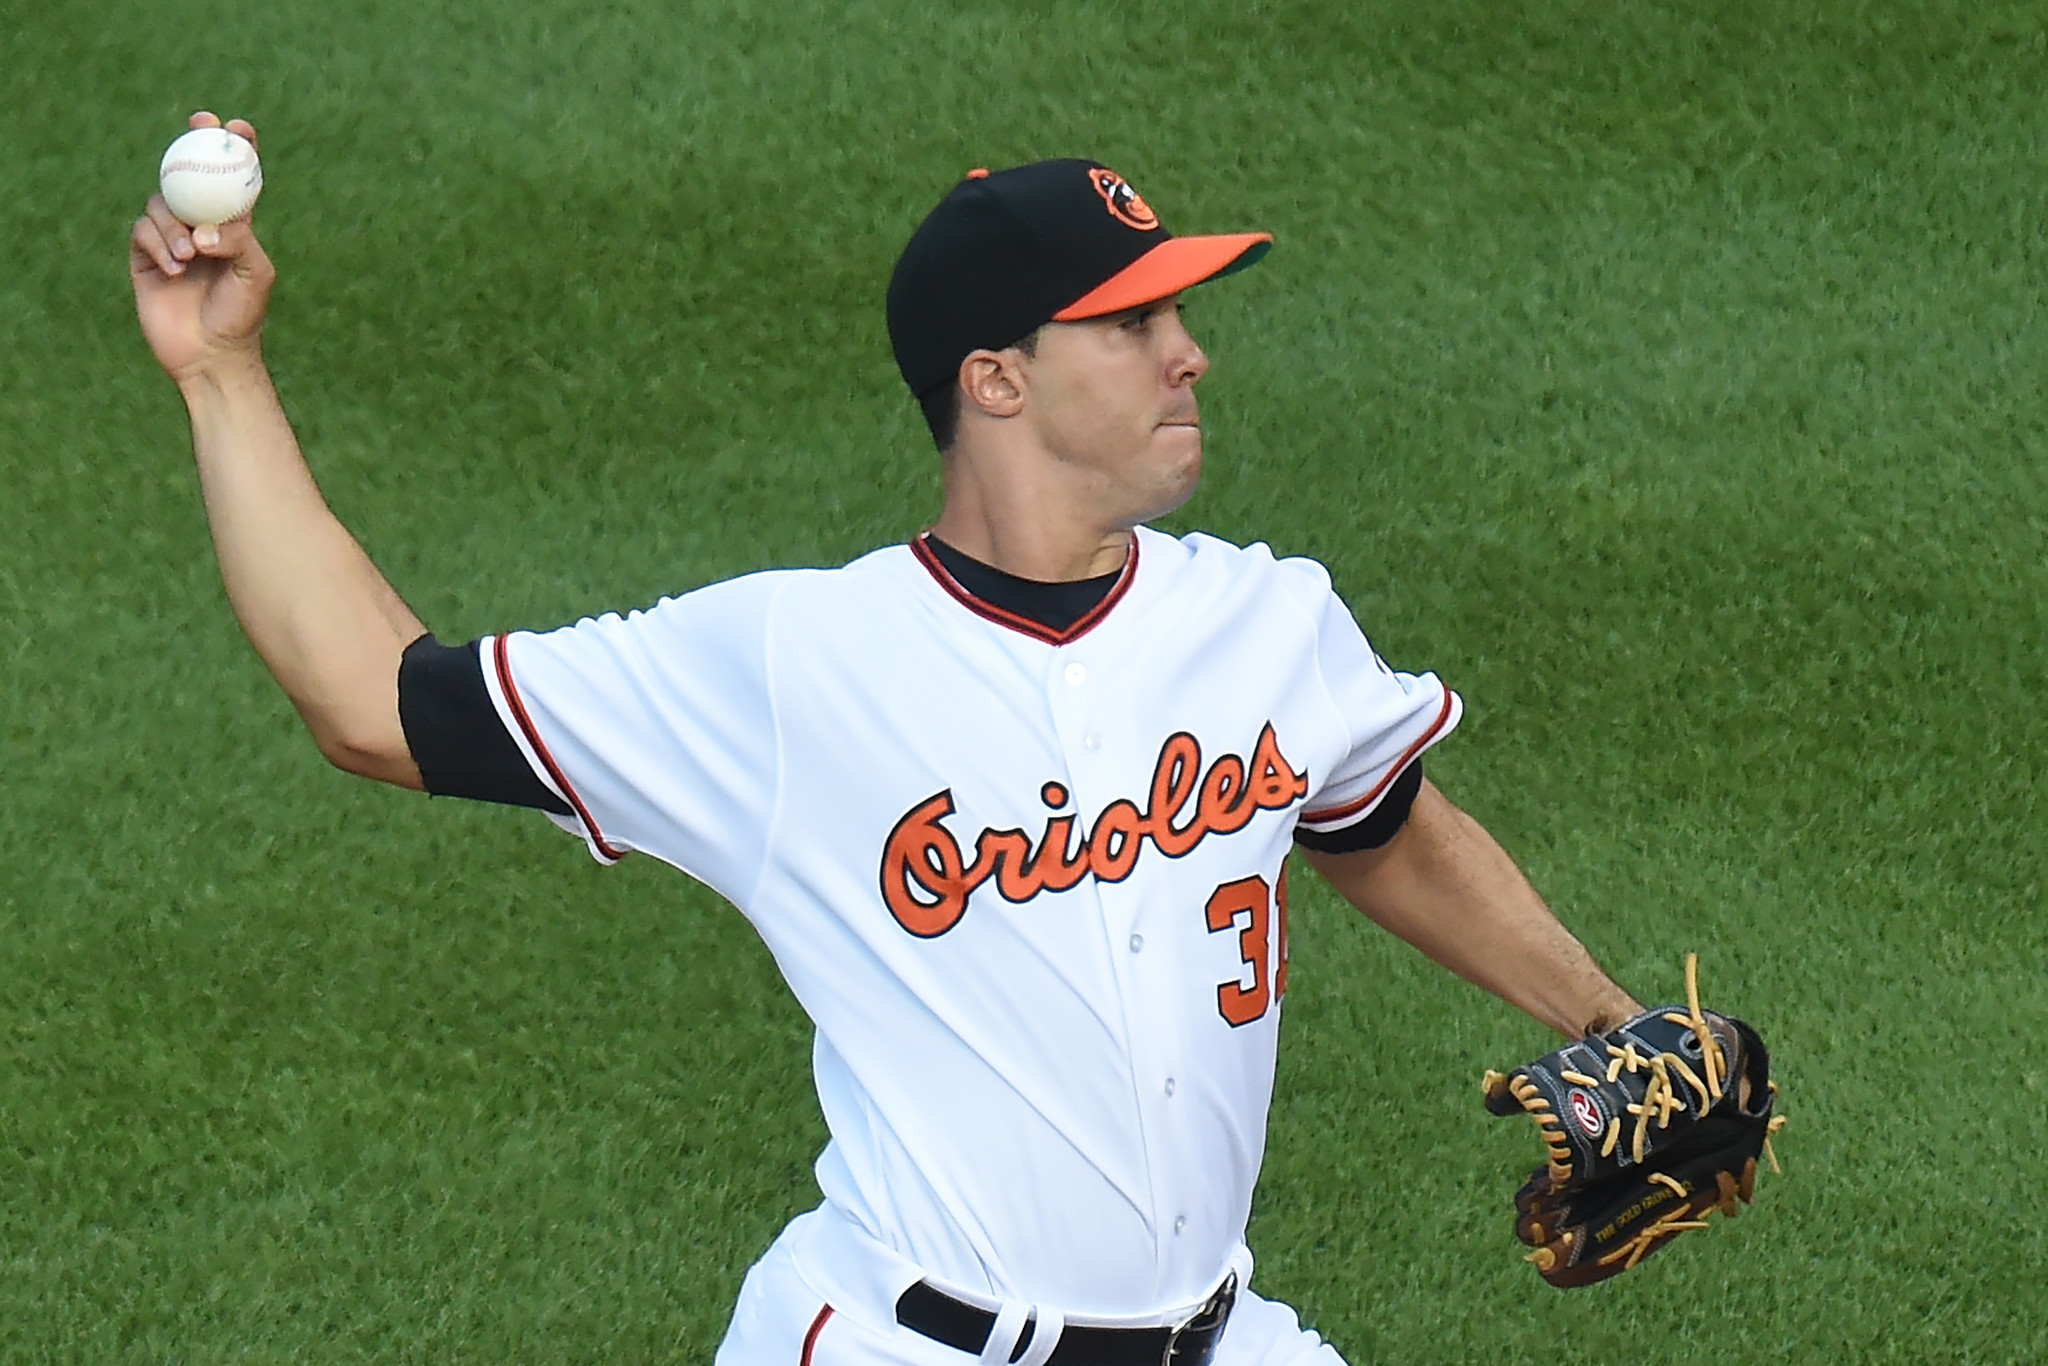 Bal-as-orioles-rotation-finds-groove-buck-showalter-alludes-to-shuffle-that-may-include-ubaldo-jimenez-20160725